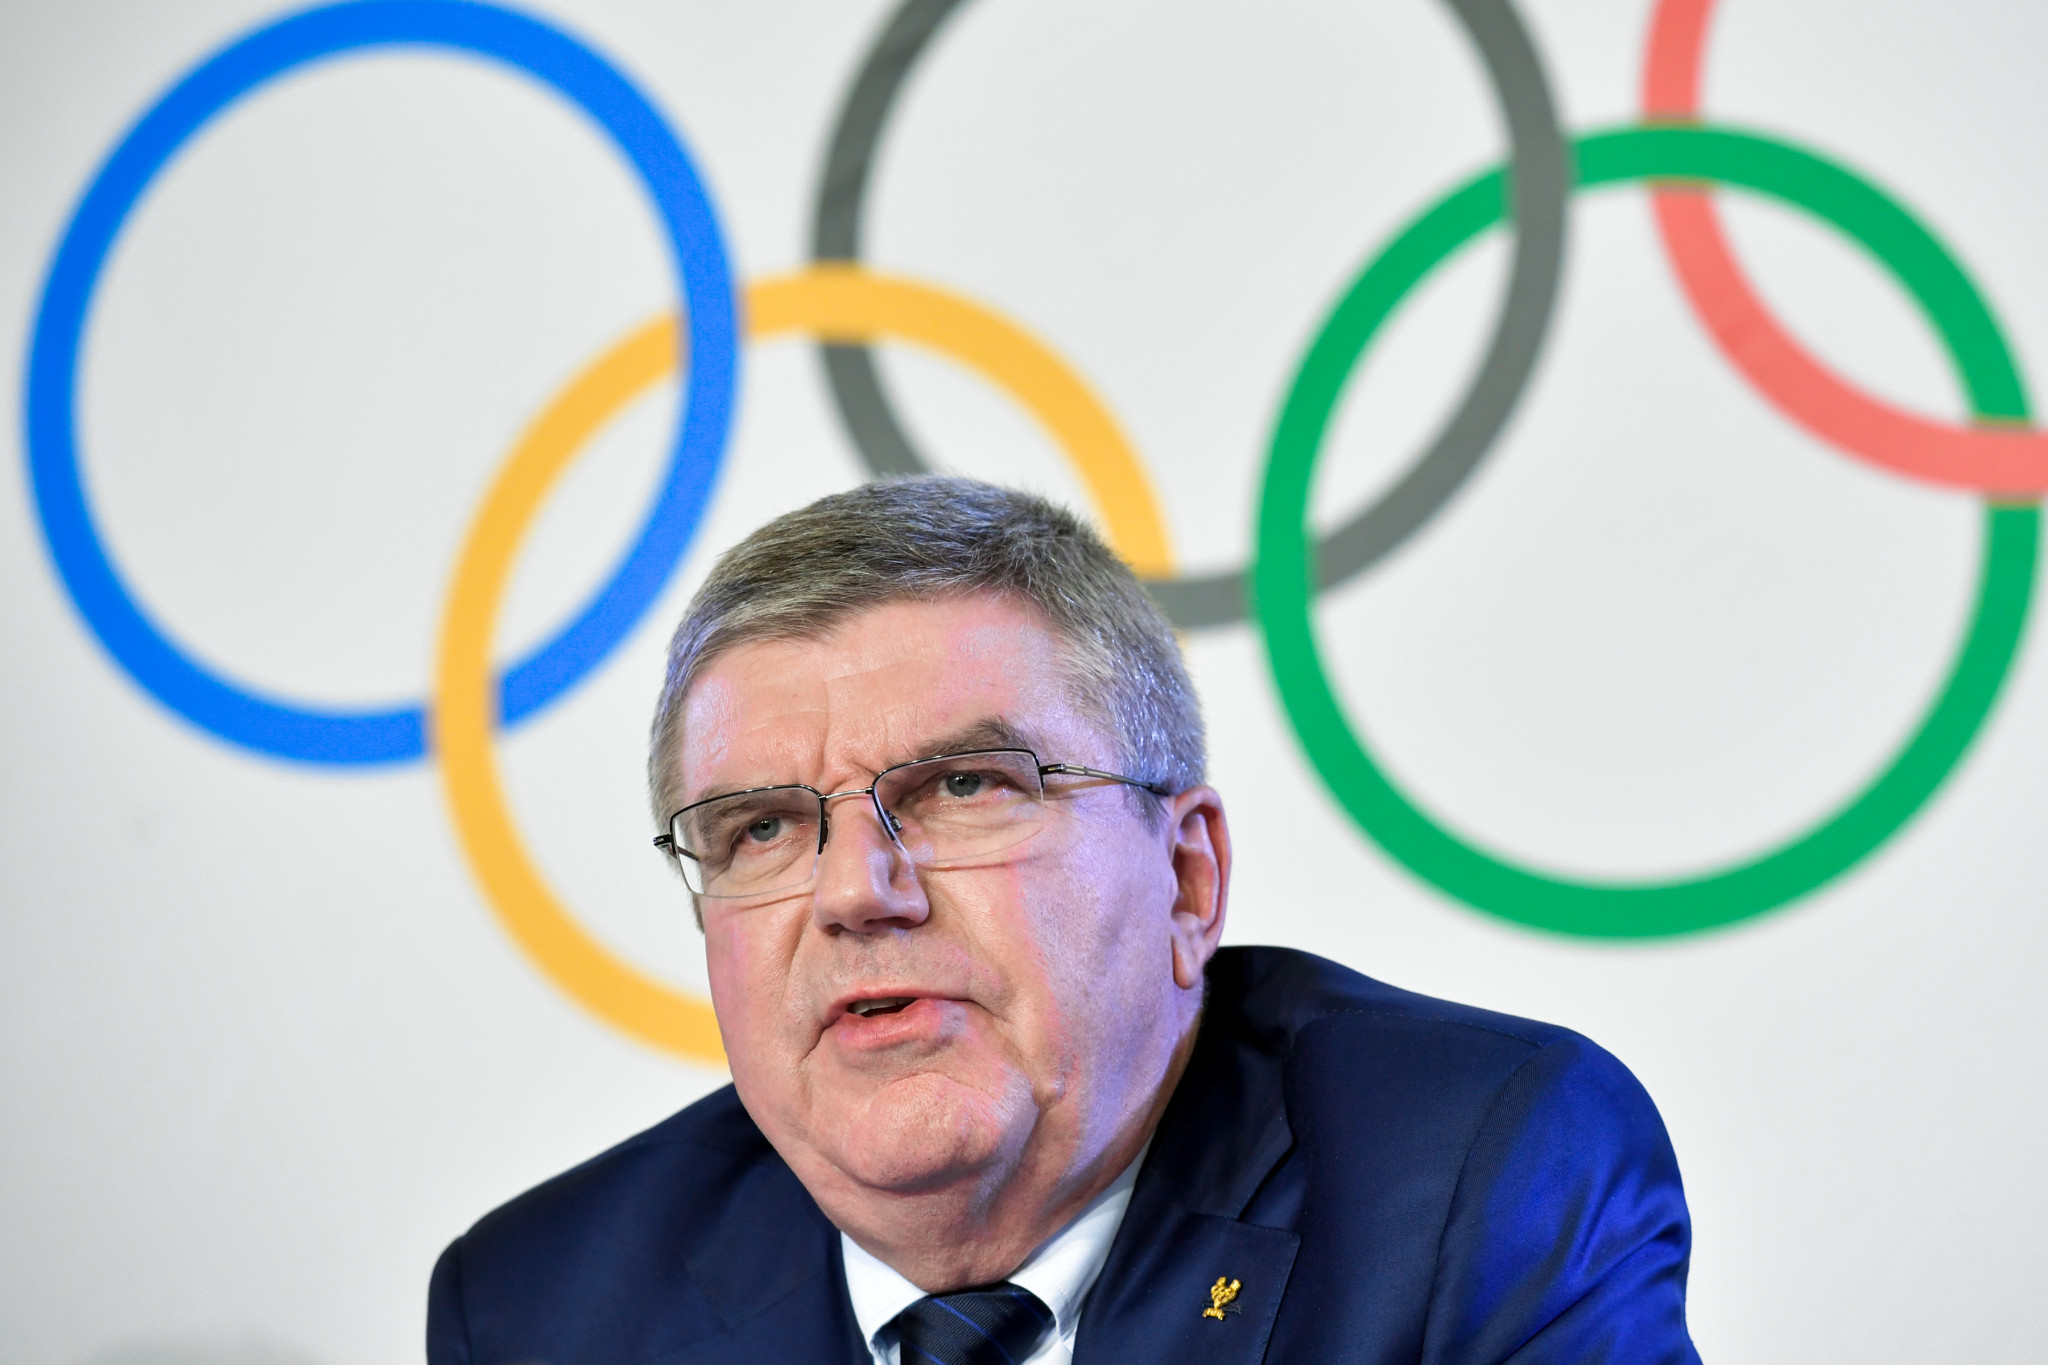 Thomas Bach called for the IOC to do more to address doping problems ©Getty Images